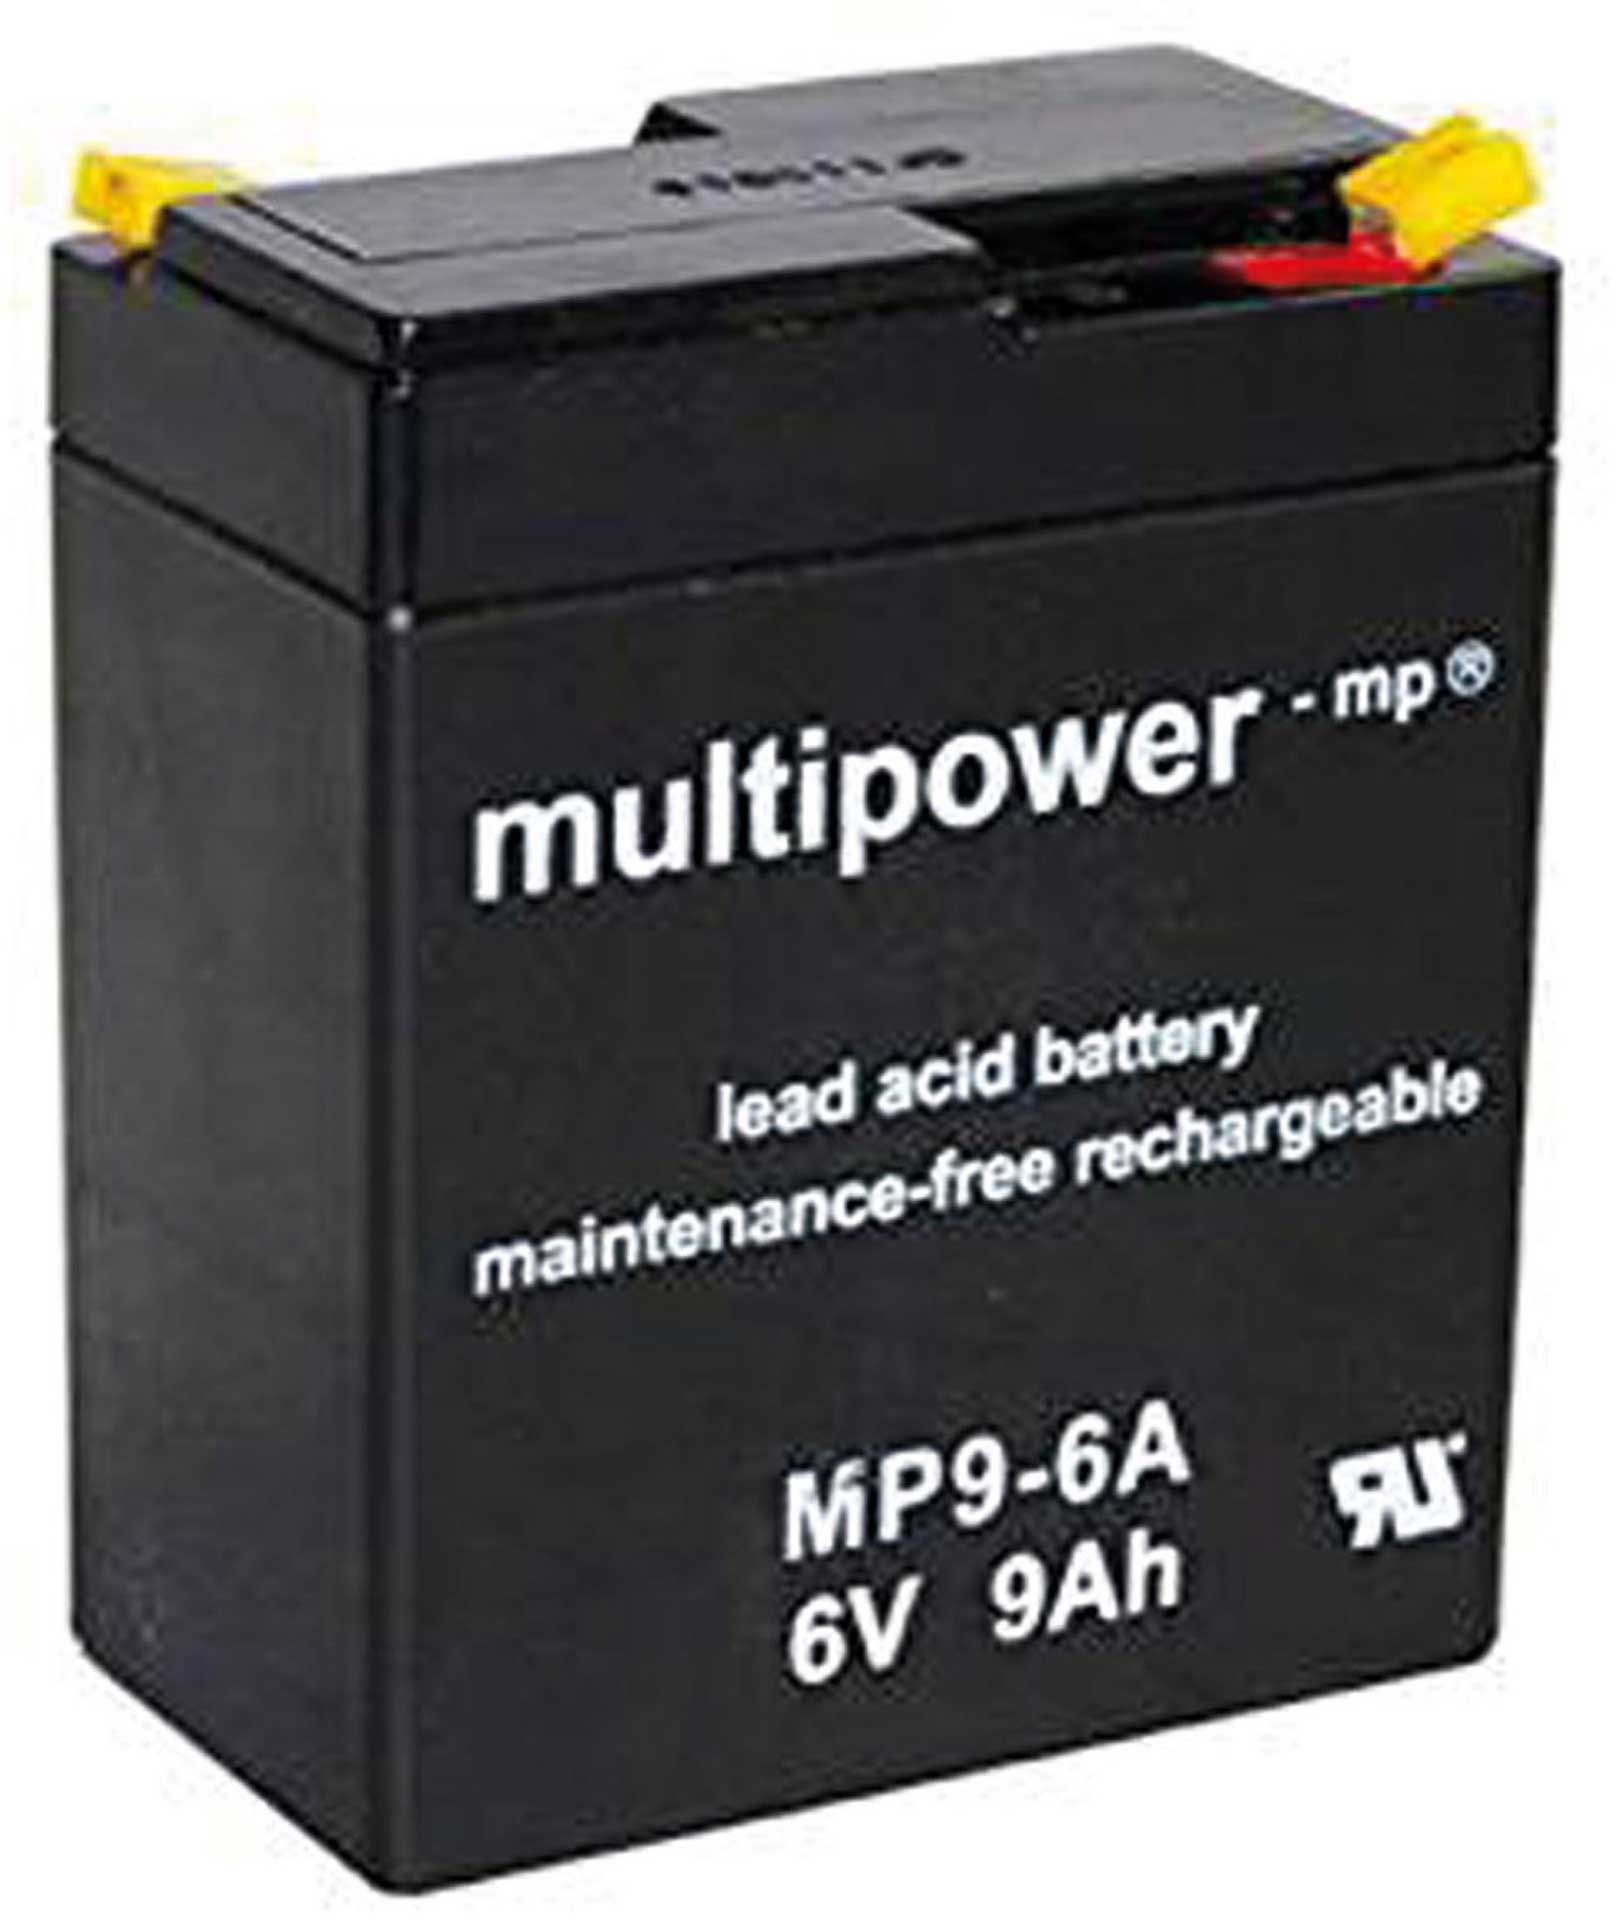 MULTIPOWER LEAD BATTERY MP9-6A PB 6V / 9AH